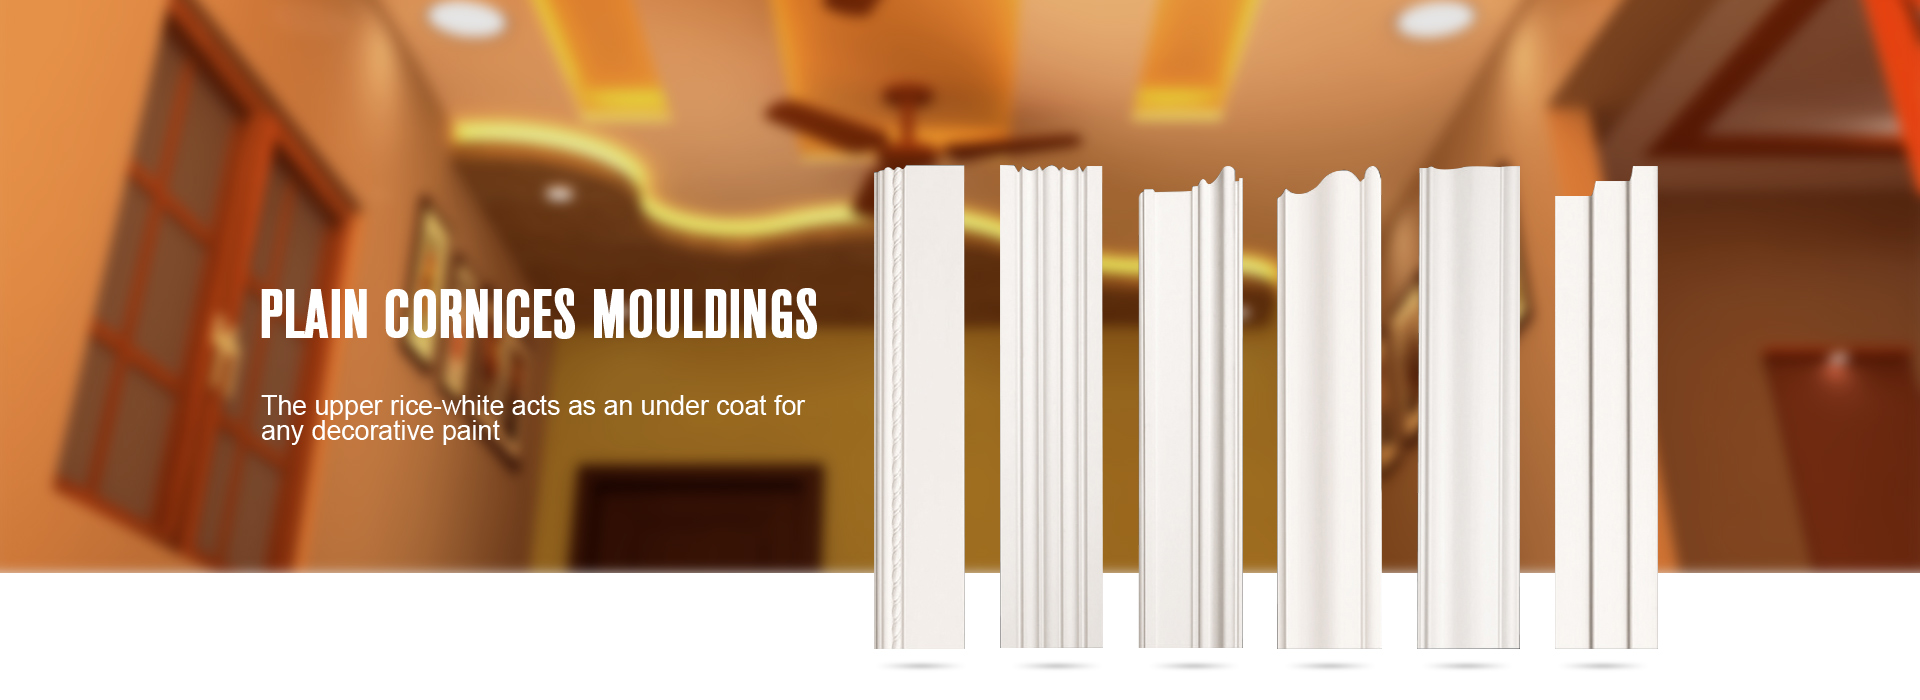 plain-cornices-mouldings